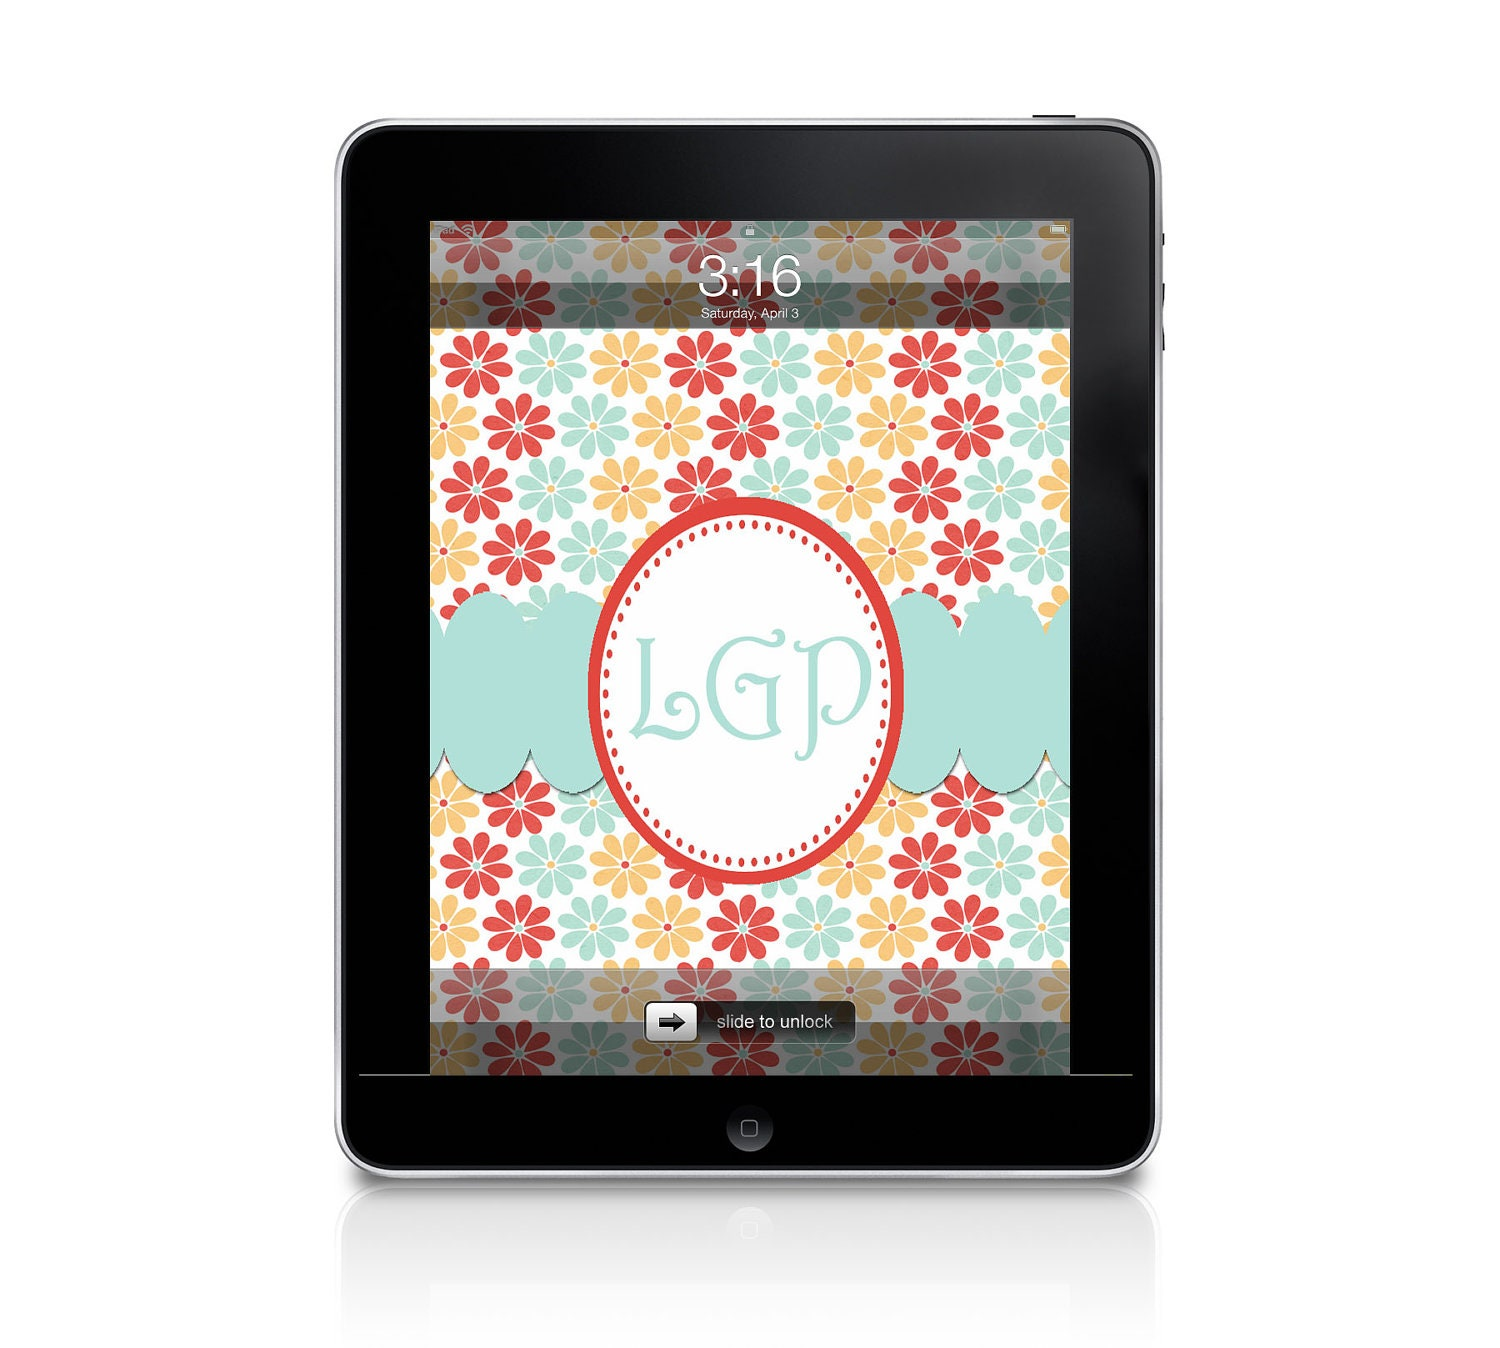 personalized ipad wallpaper by elliebluedesigns on etsy